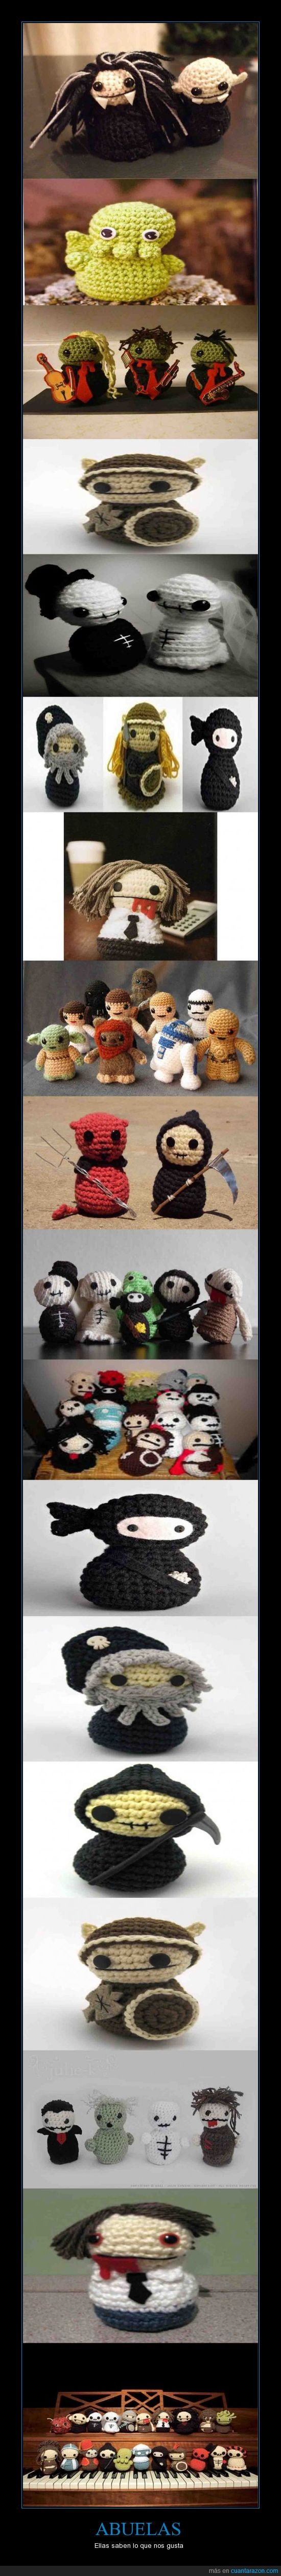 abuela,abueltas,adorable,creepers,crochet,star wars,tejido